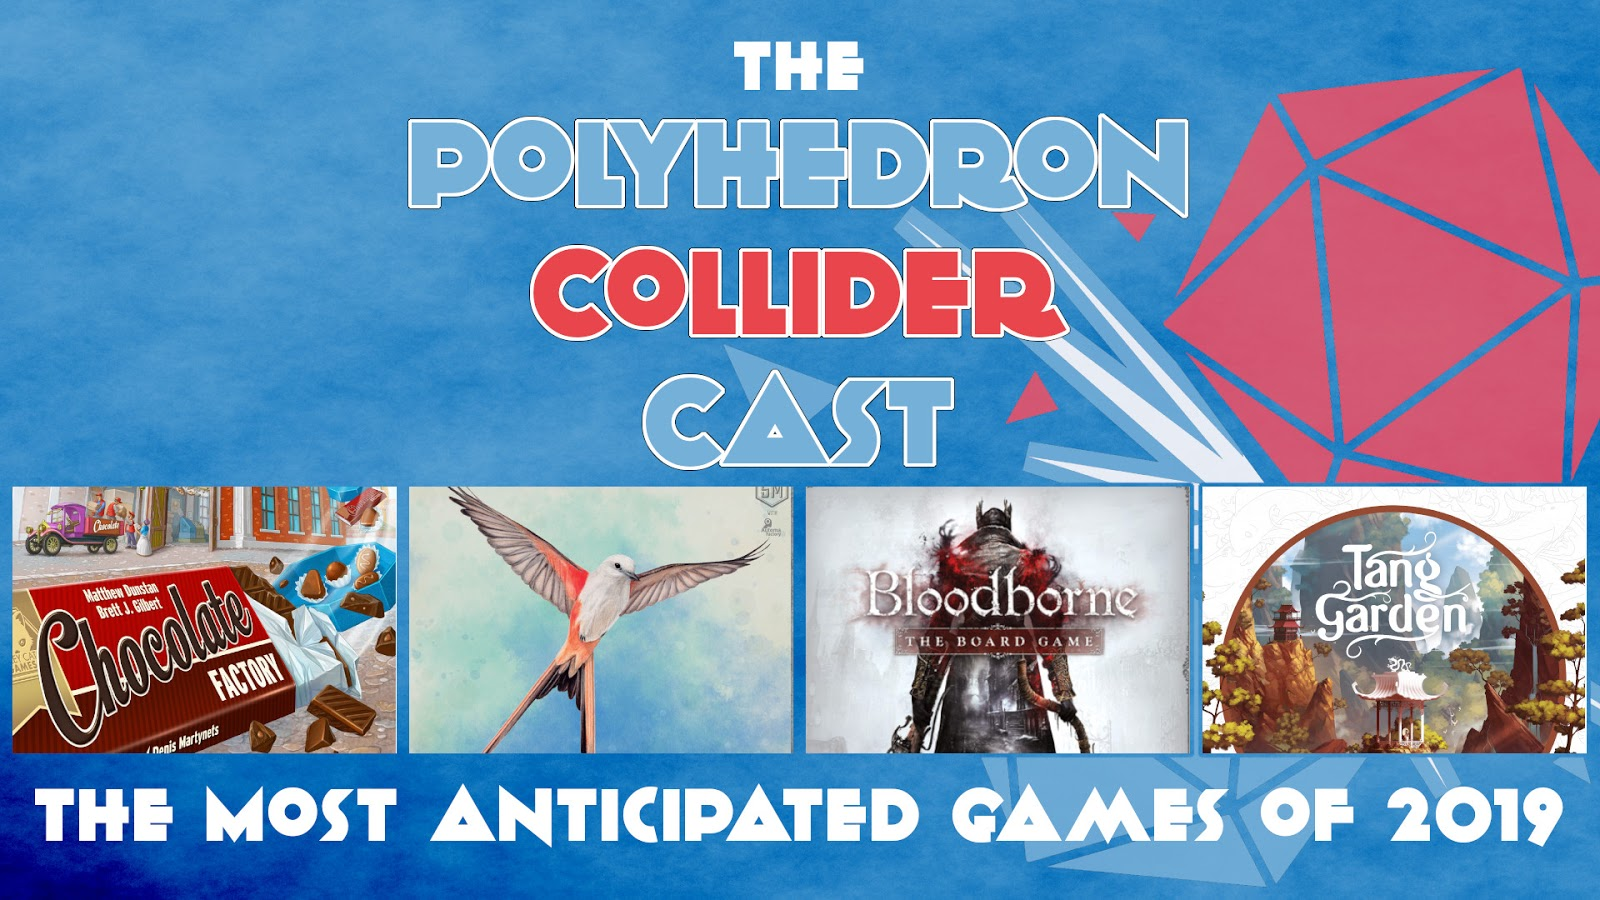 Board Game News Collider - Most Anticipated Games of 2019